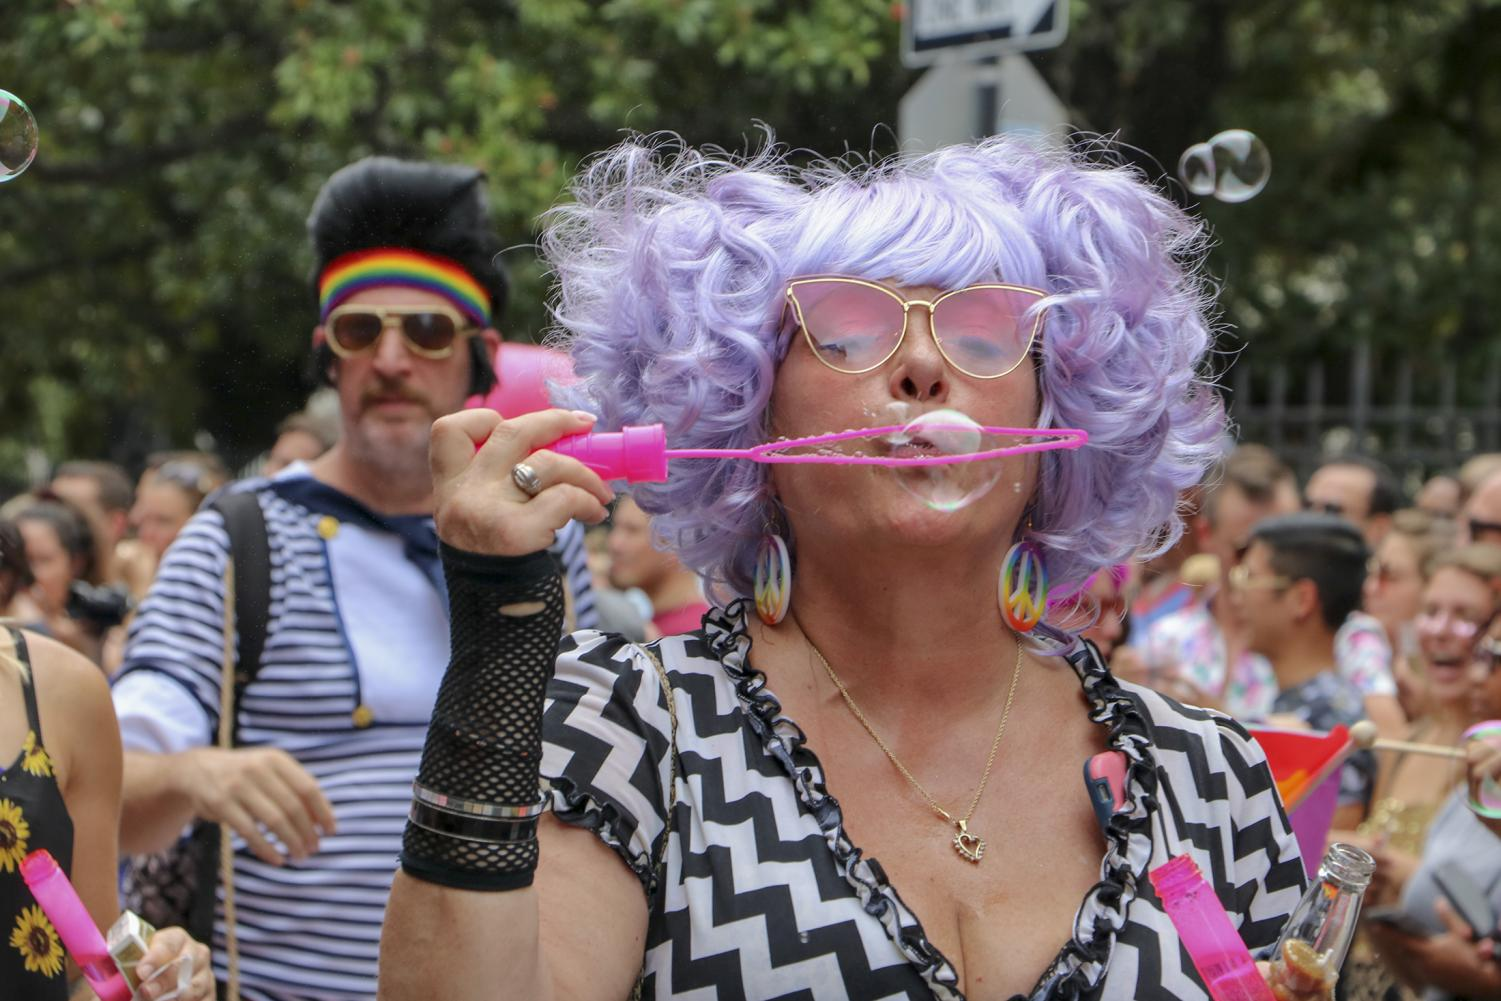 Parade-goer blows bubbles in the 48th Southern Decadence Parade. The event celebrates the LGBTQ+ community. Photo credit: Hannah Renton